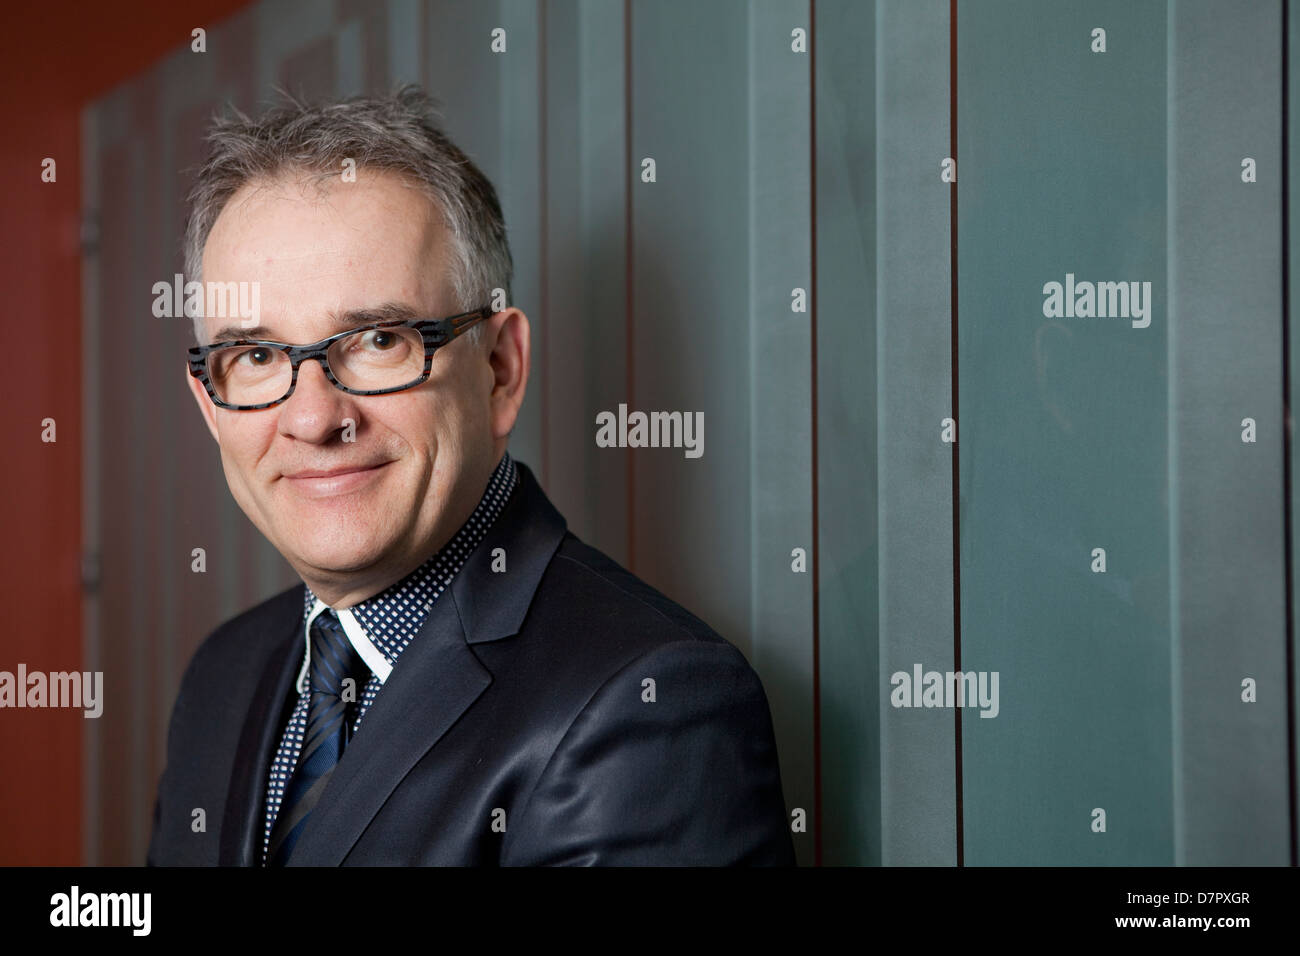 Rejean Hebert, Minister of Health and Social Services for the PQ, is pictured at his office in Quebec City - Stock Image